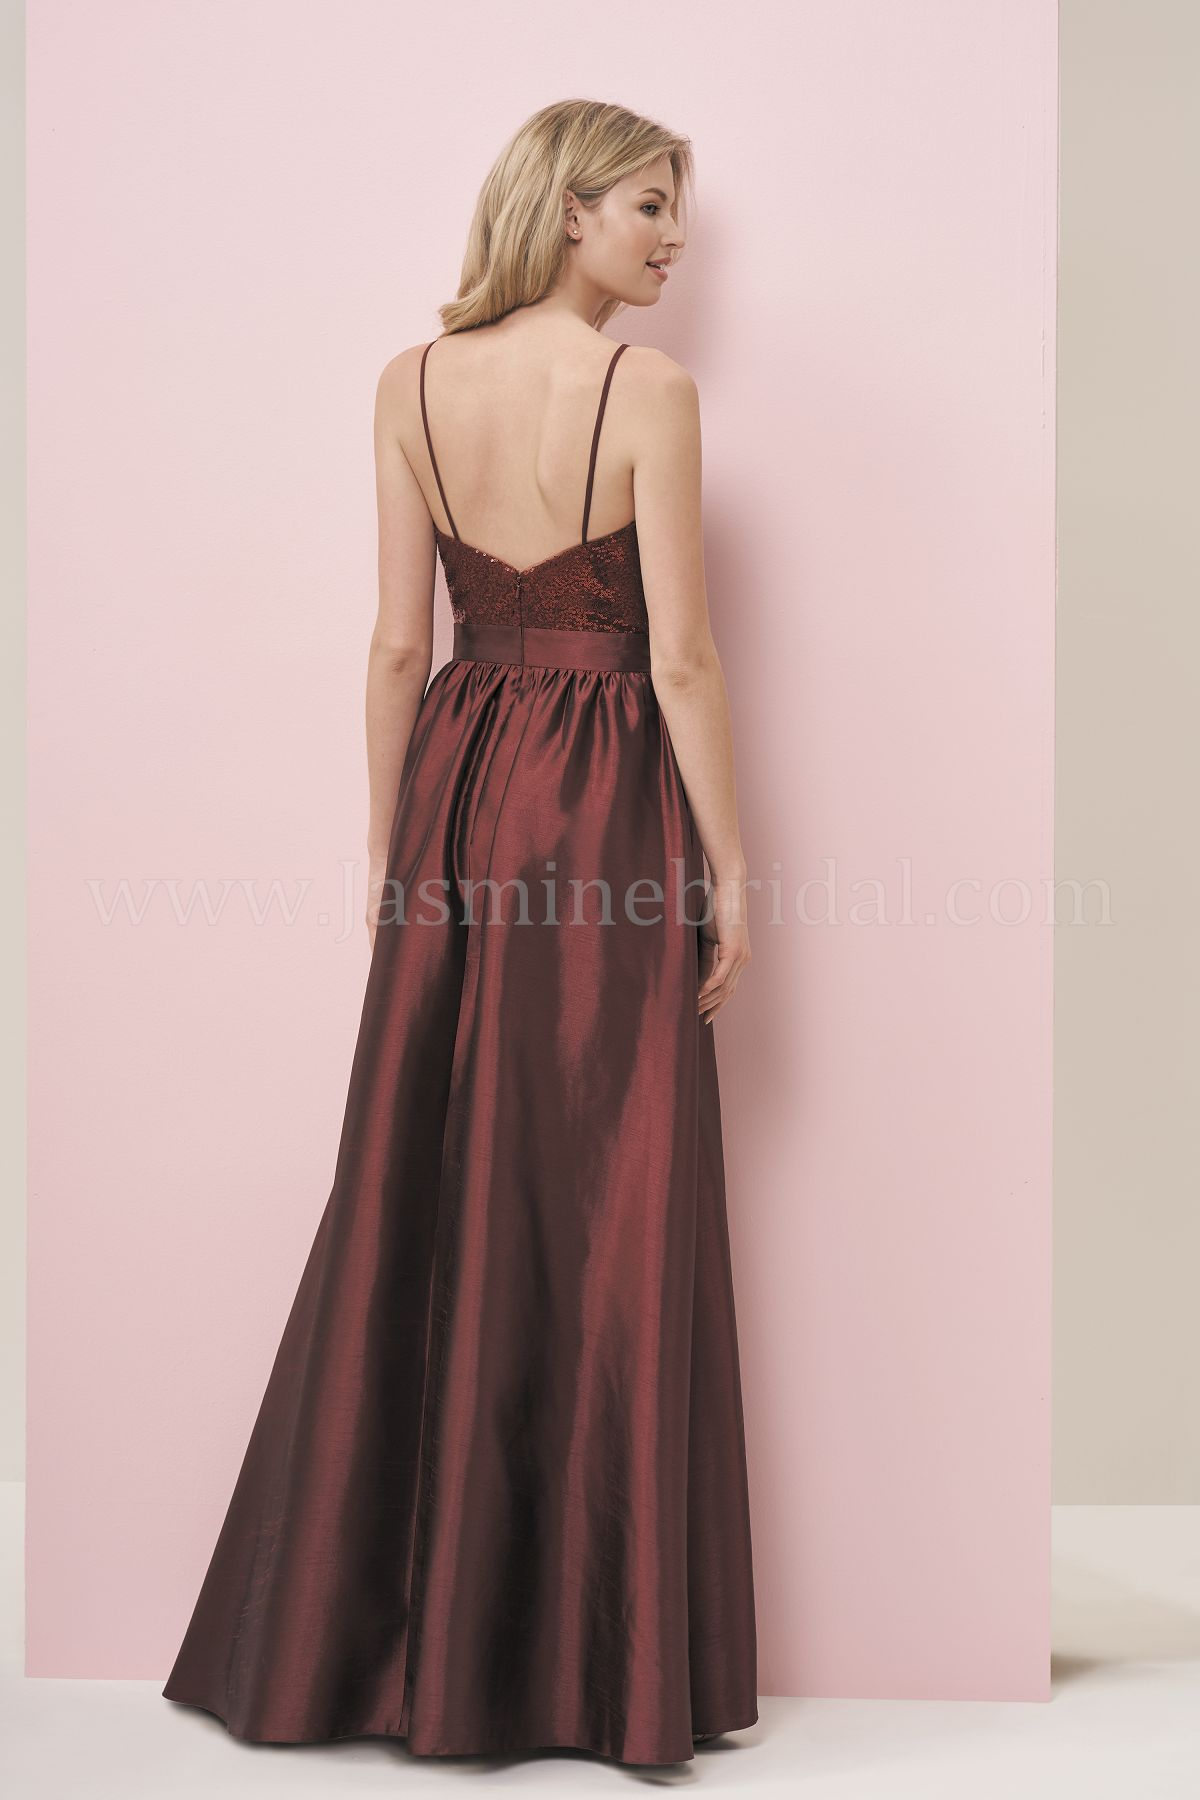 bridesmaid-dresses-P196059-B